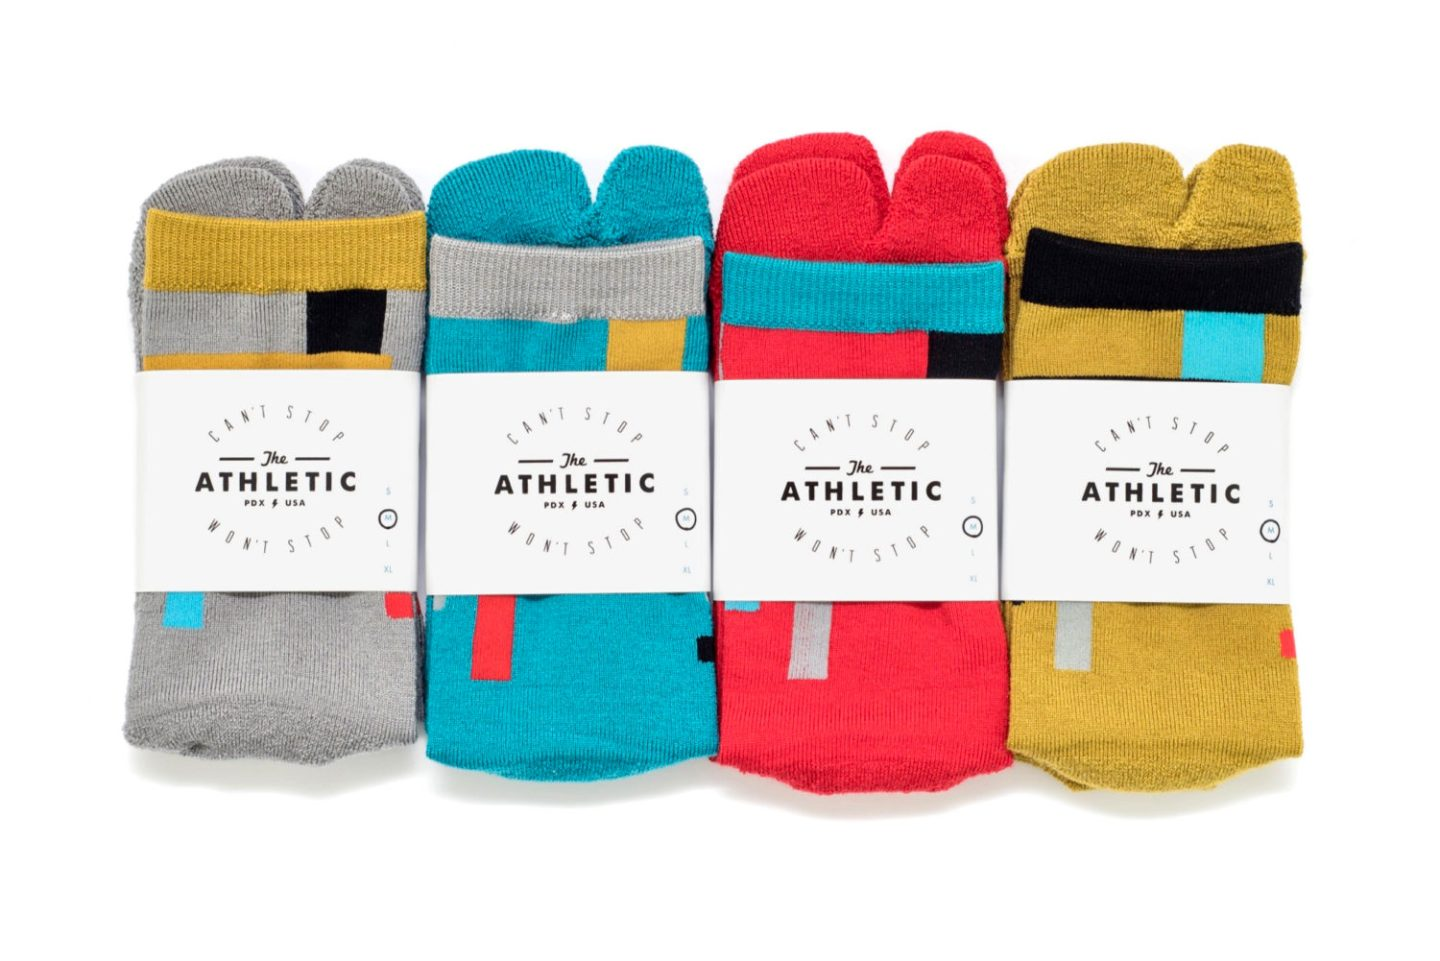 The Athletic Tabby Socks